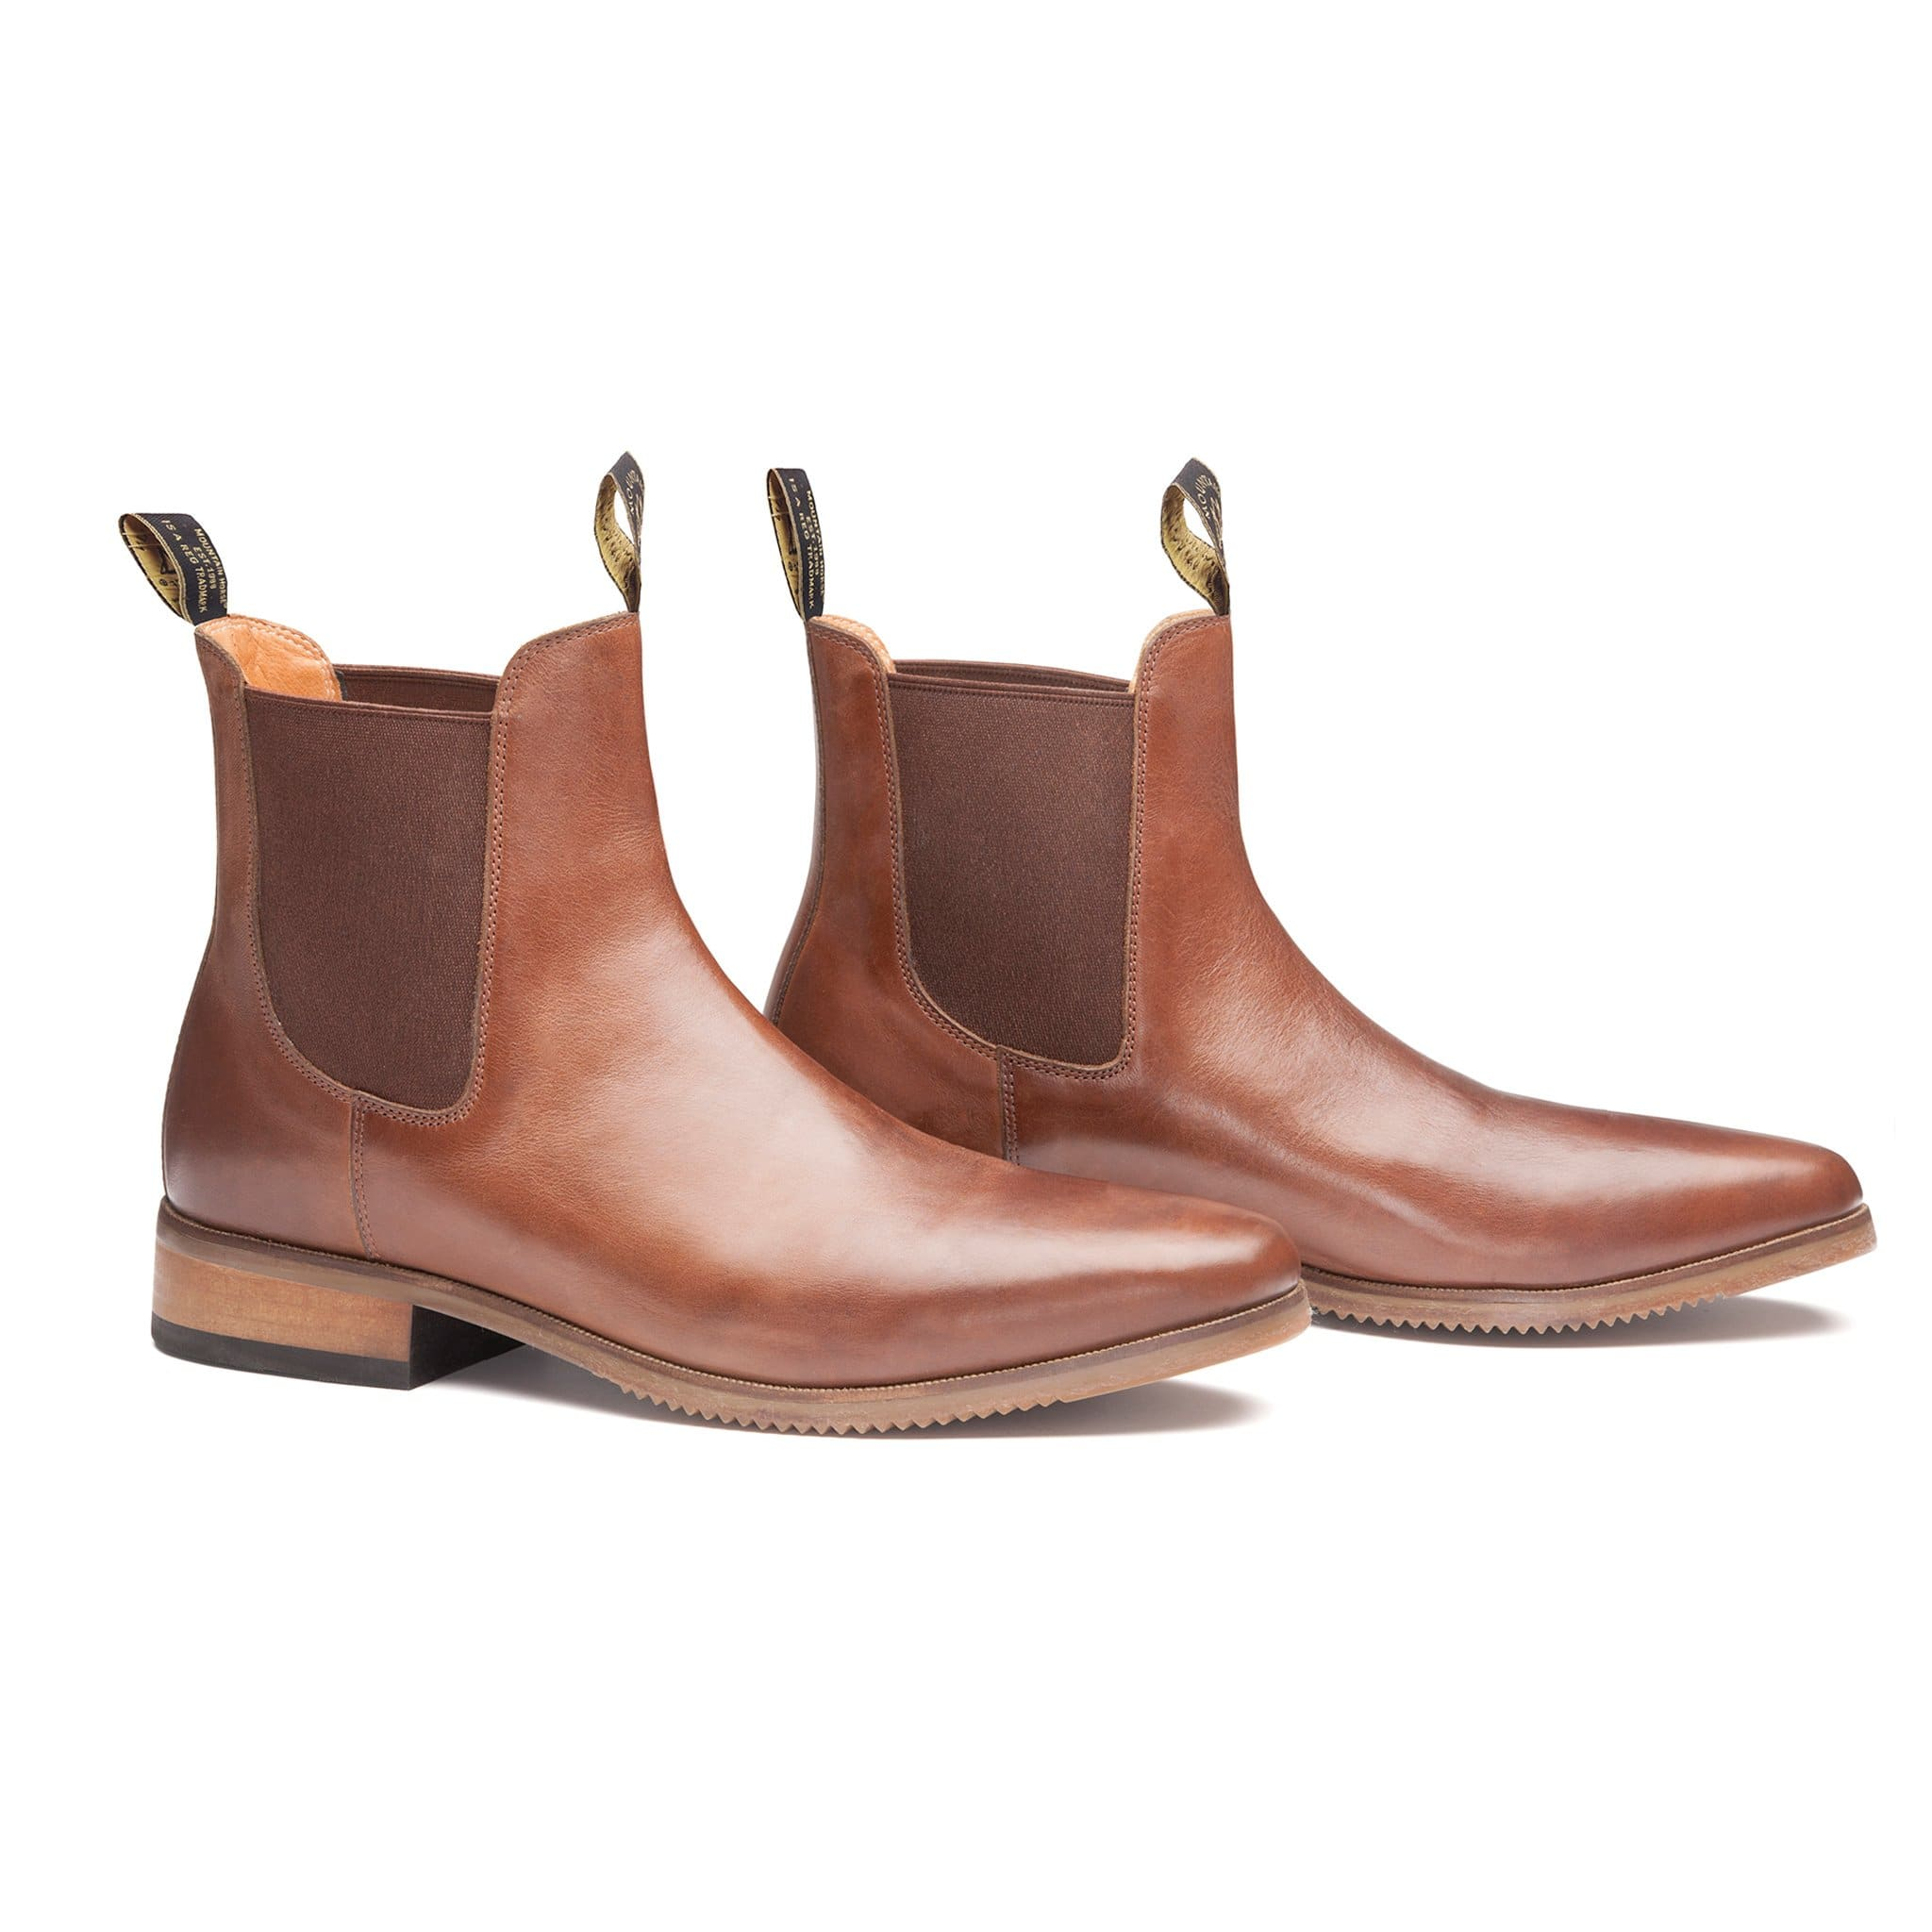 Mountain Horse Resolute Jodhpur Boot in Light Brown Studio 01034